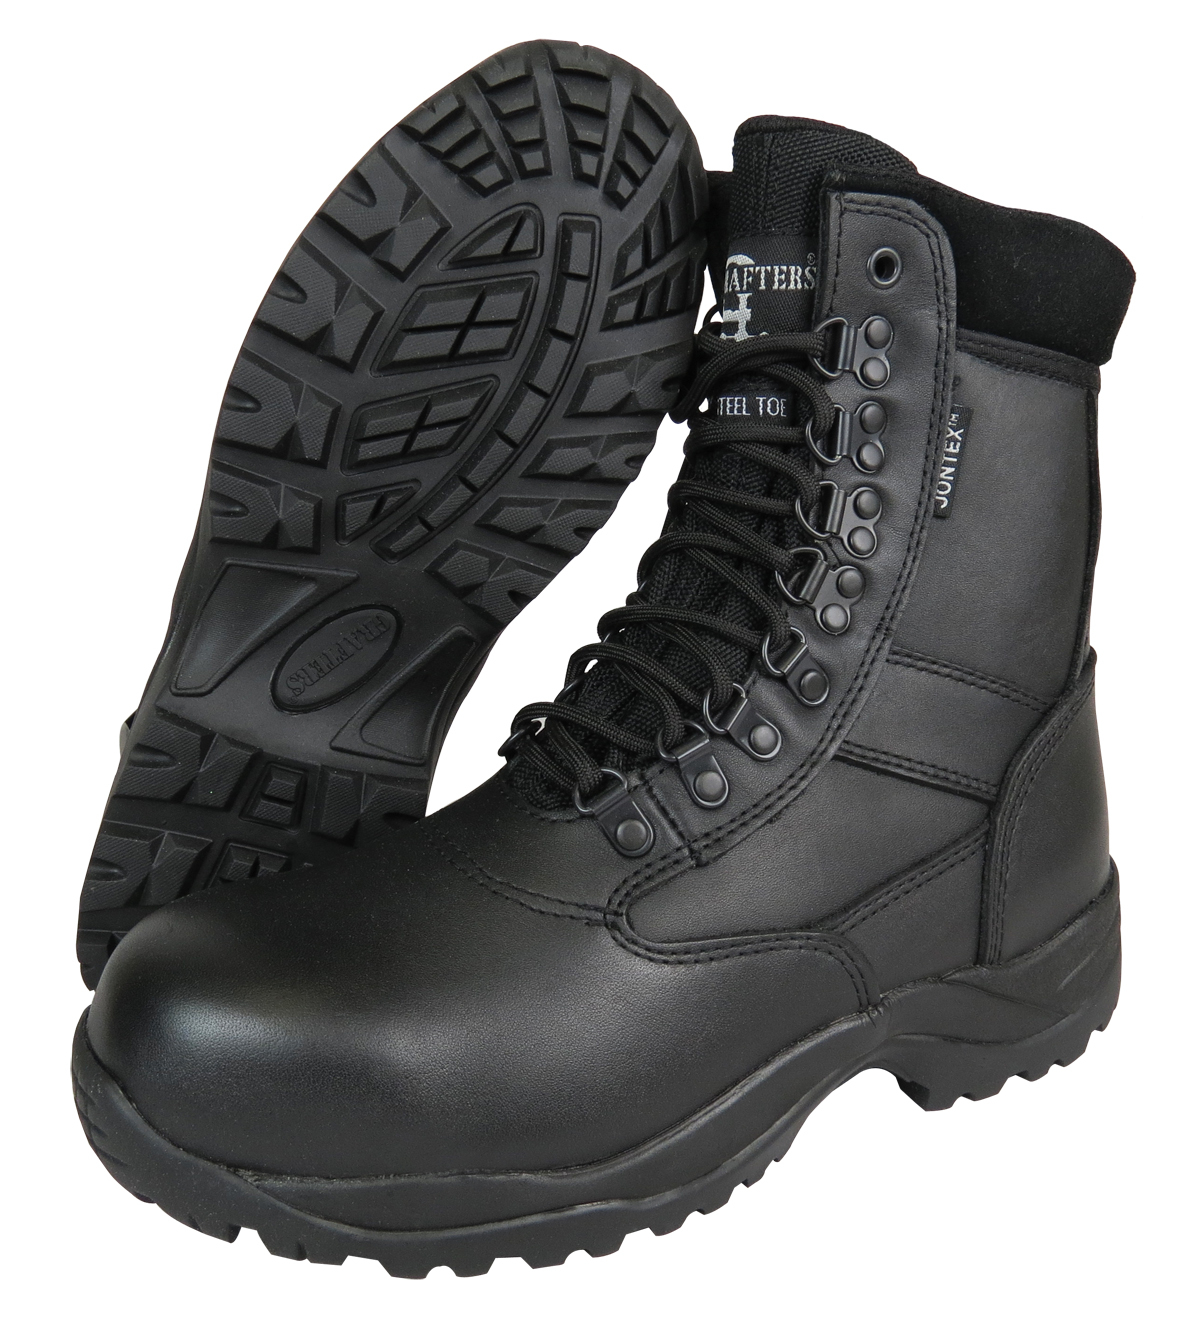 ff2466d6777 Grafter Tornado Waterproof Safety Boot